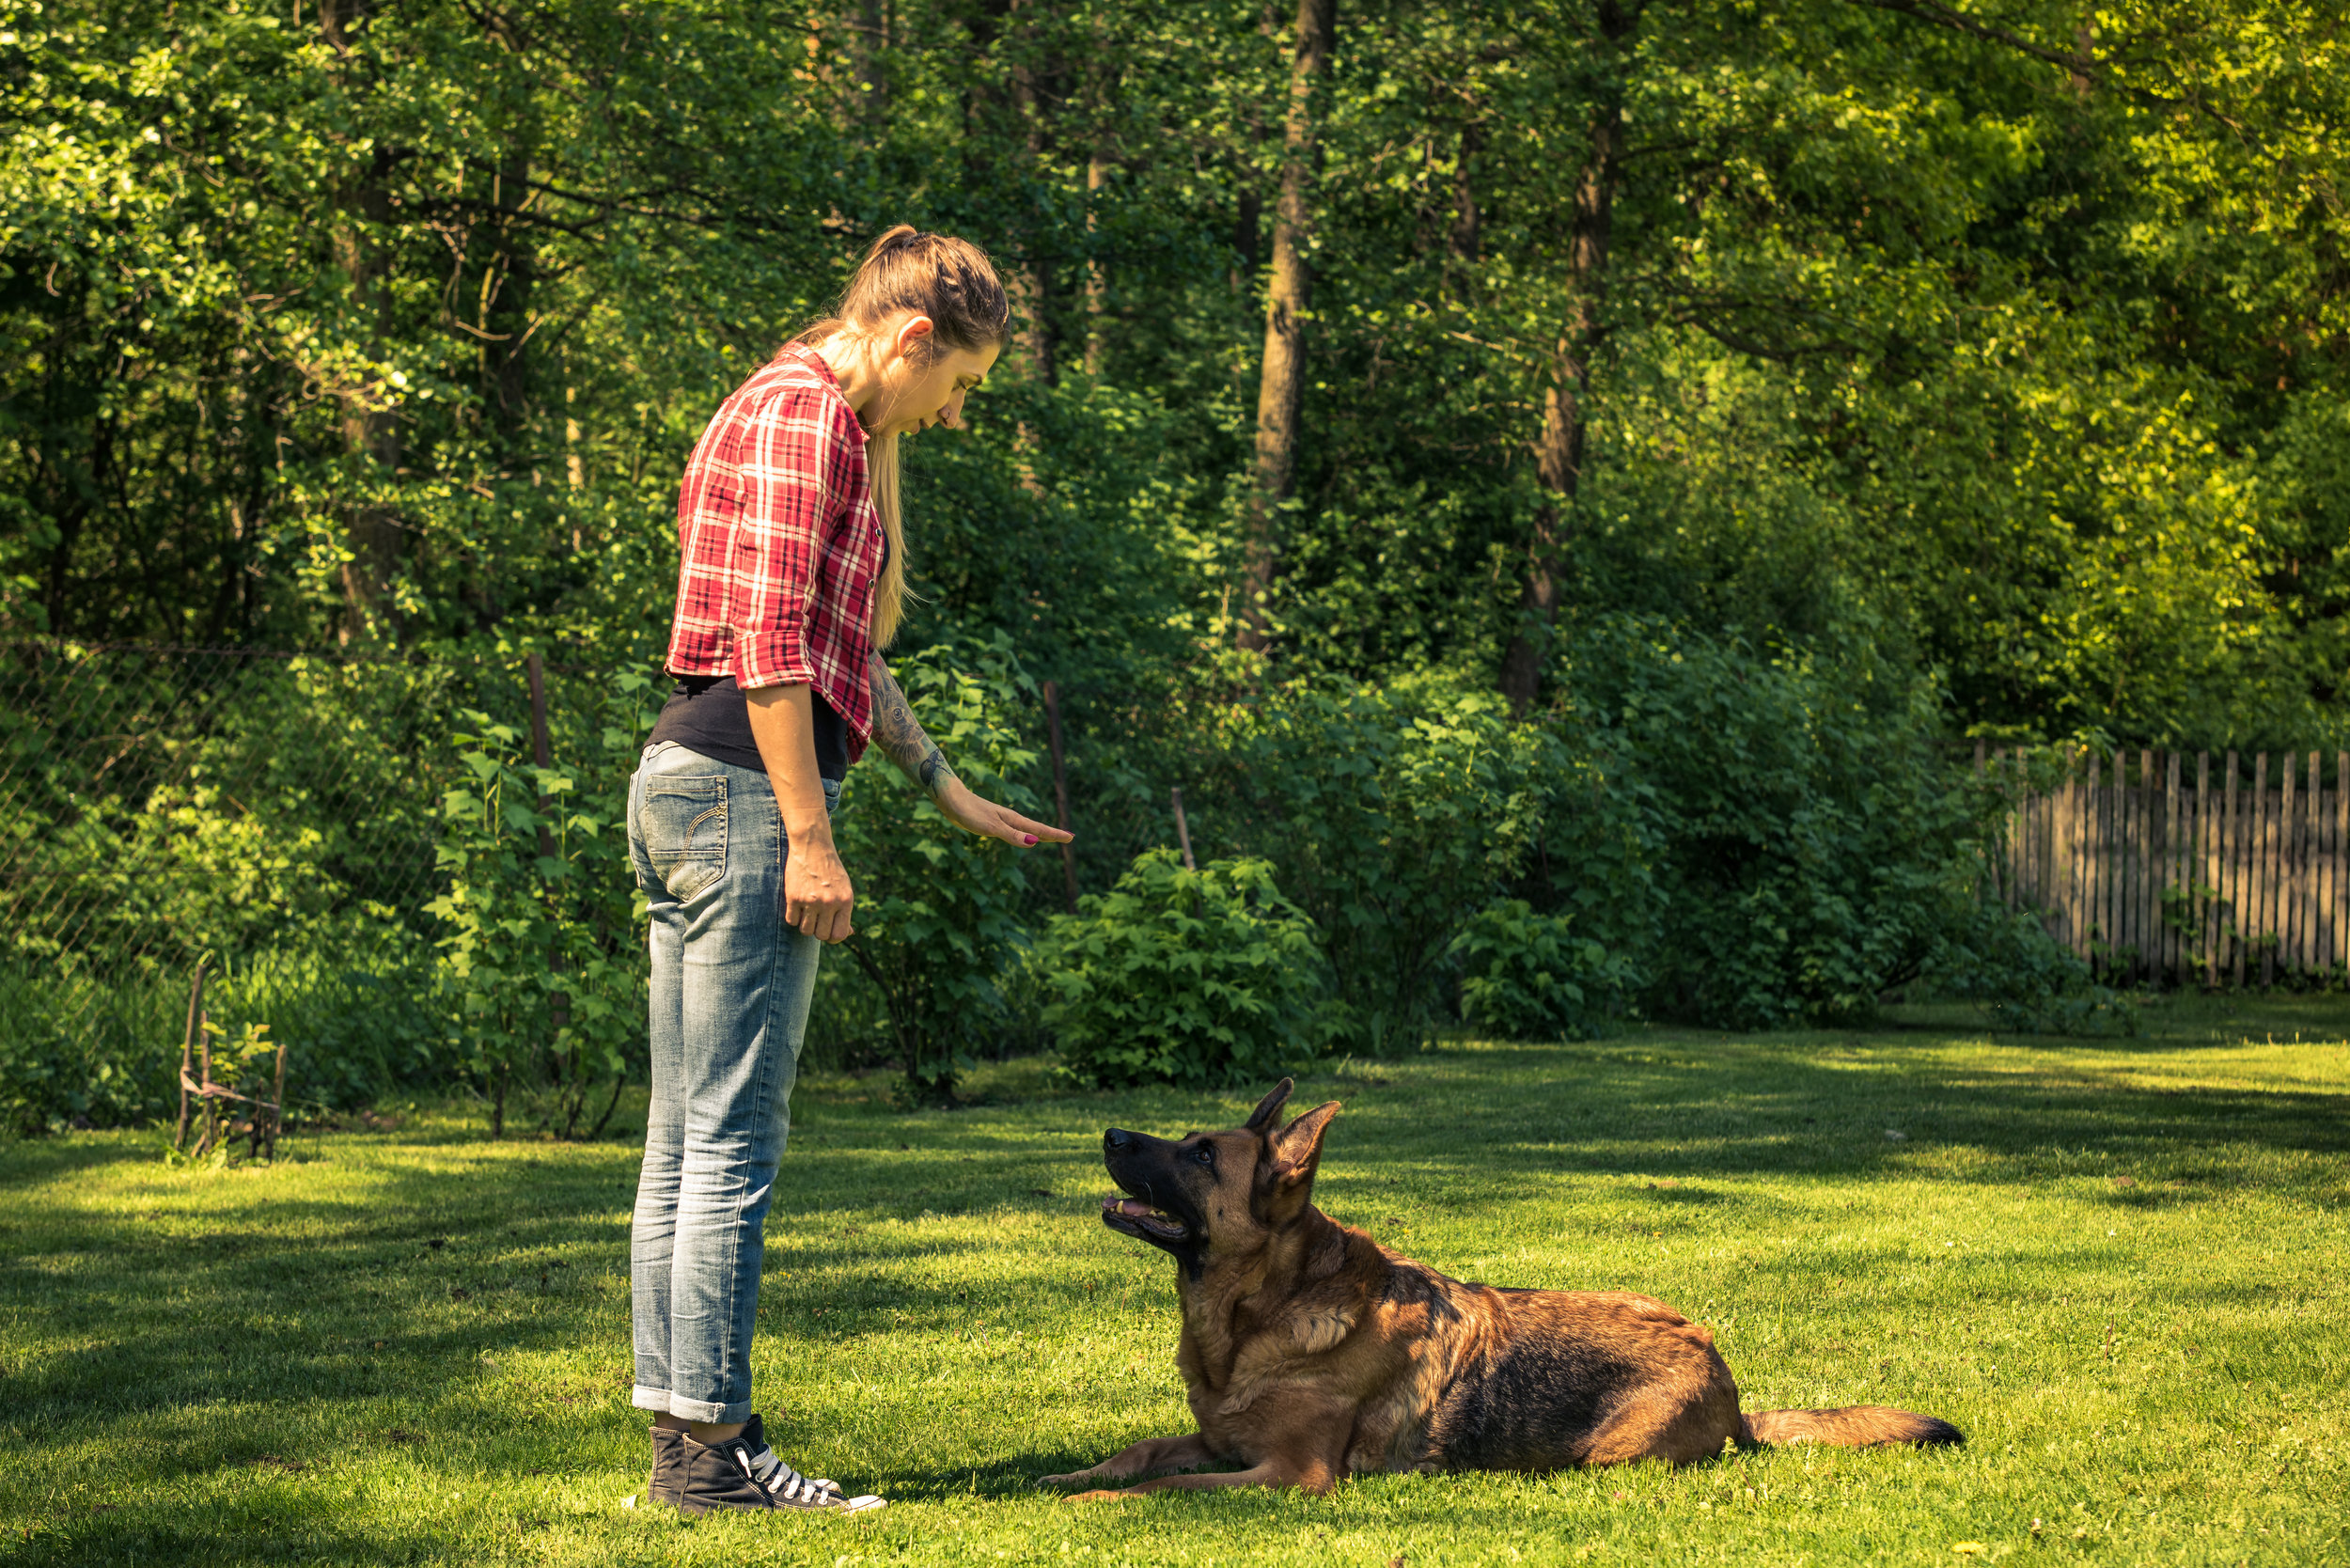 Hand signals and voice commands don't get dogs to behave -